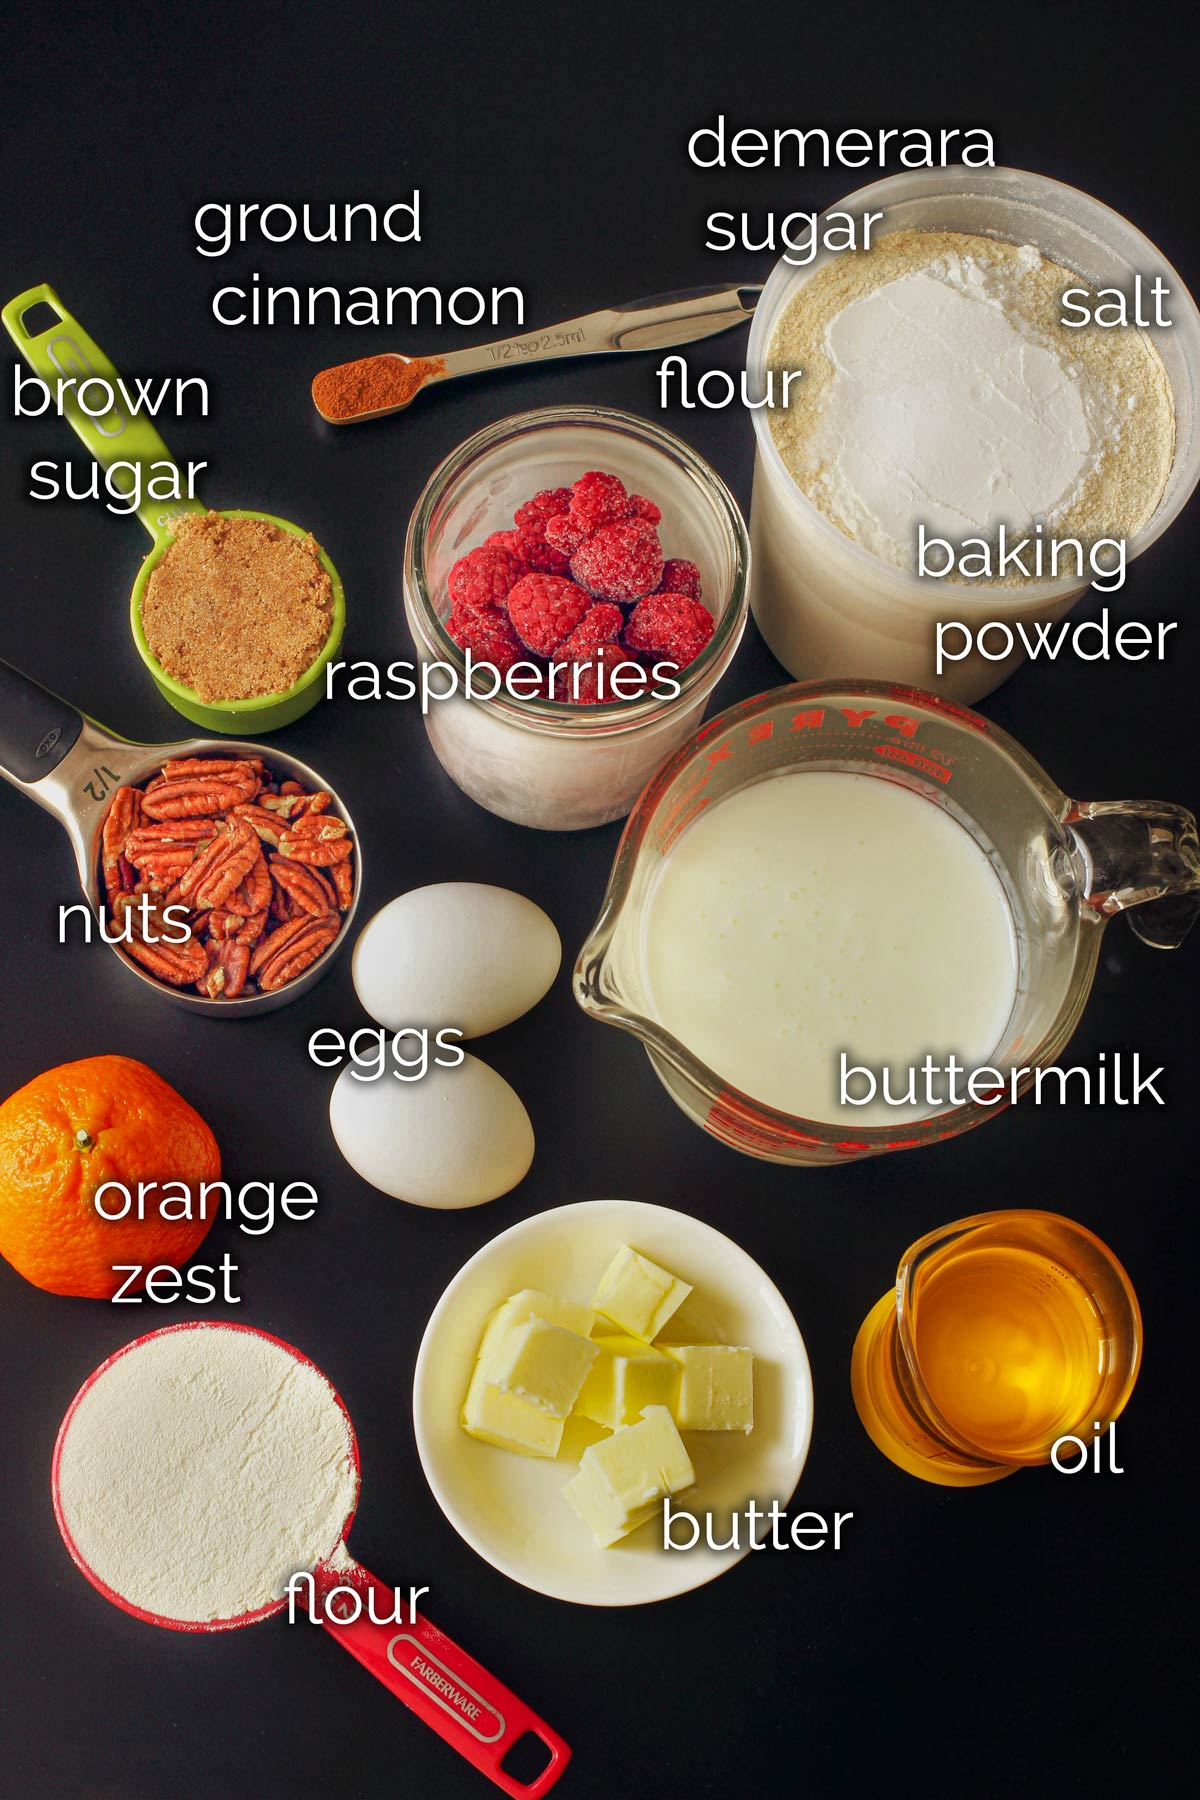 ingredients for raspberry muffins on a black tabletop.